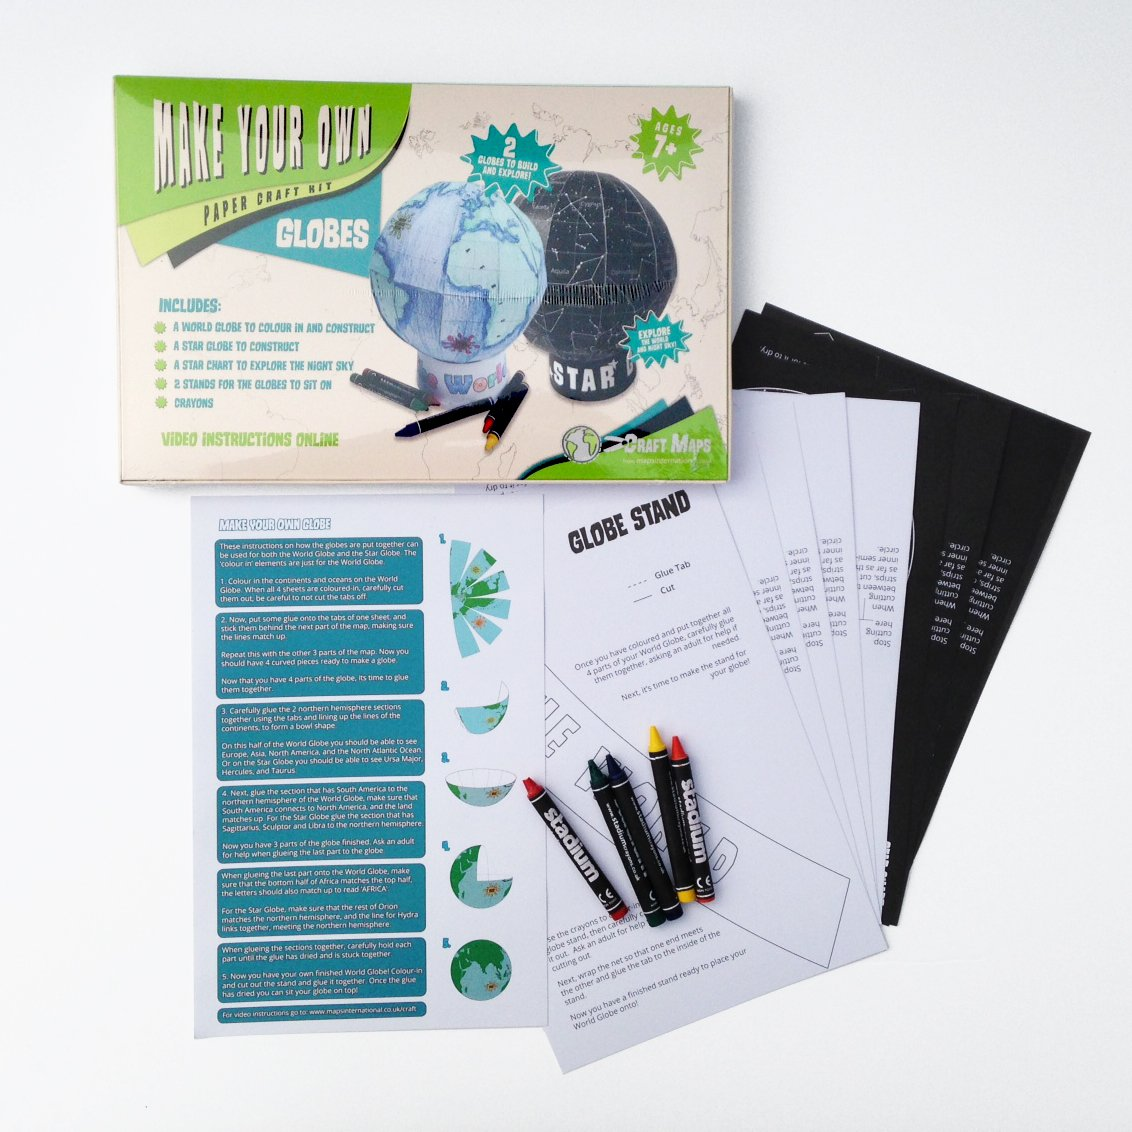 Amazon make your own globes craft kit world globe and star amazon make your own globes craft kit world globe and star globe with crayons for children office products gumiabroncs Gallery